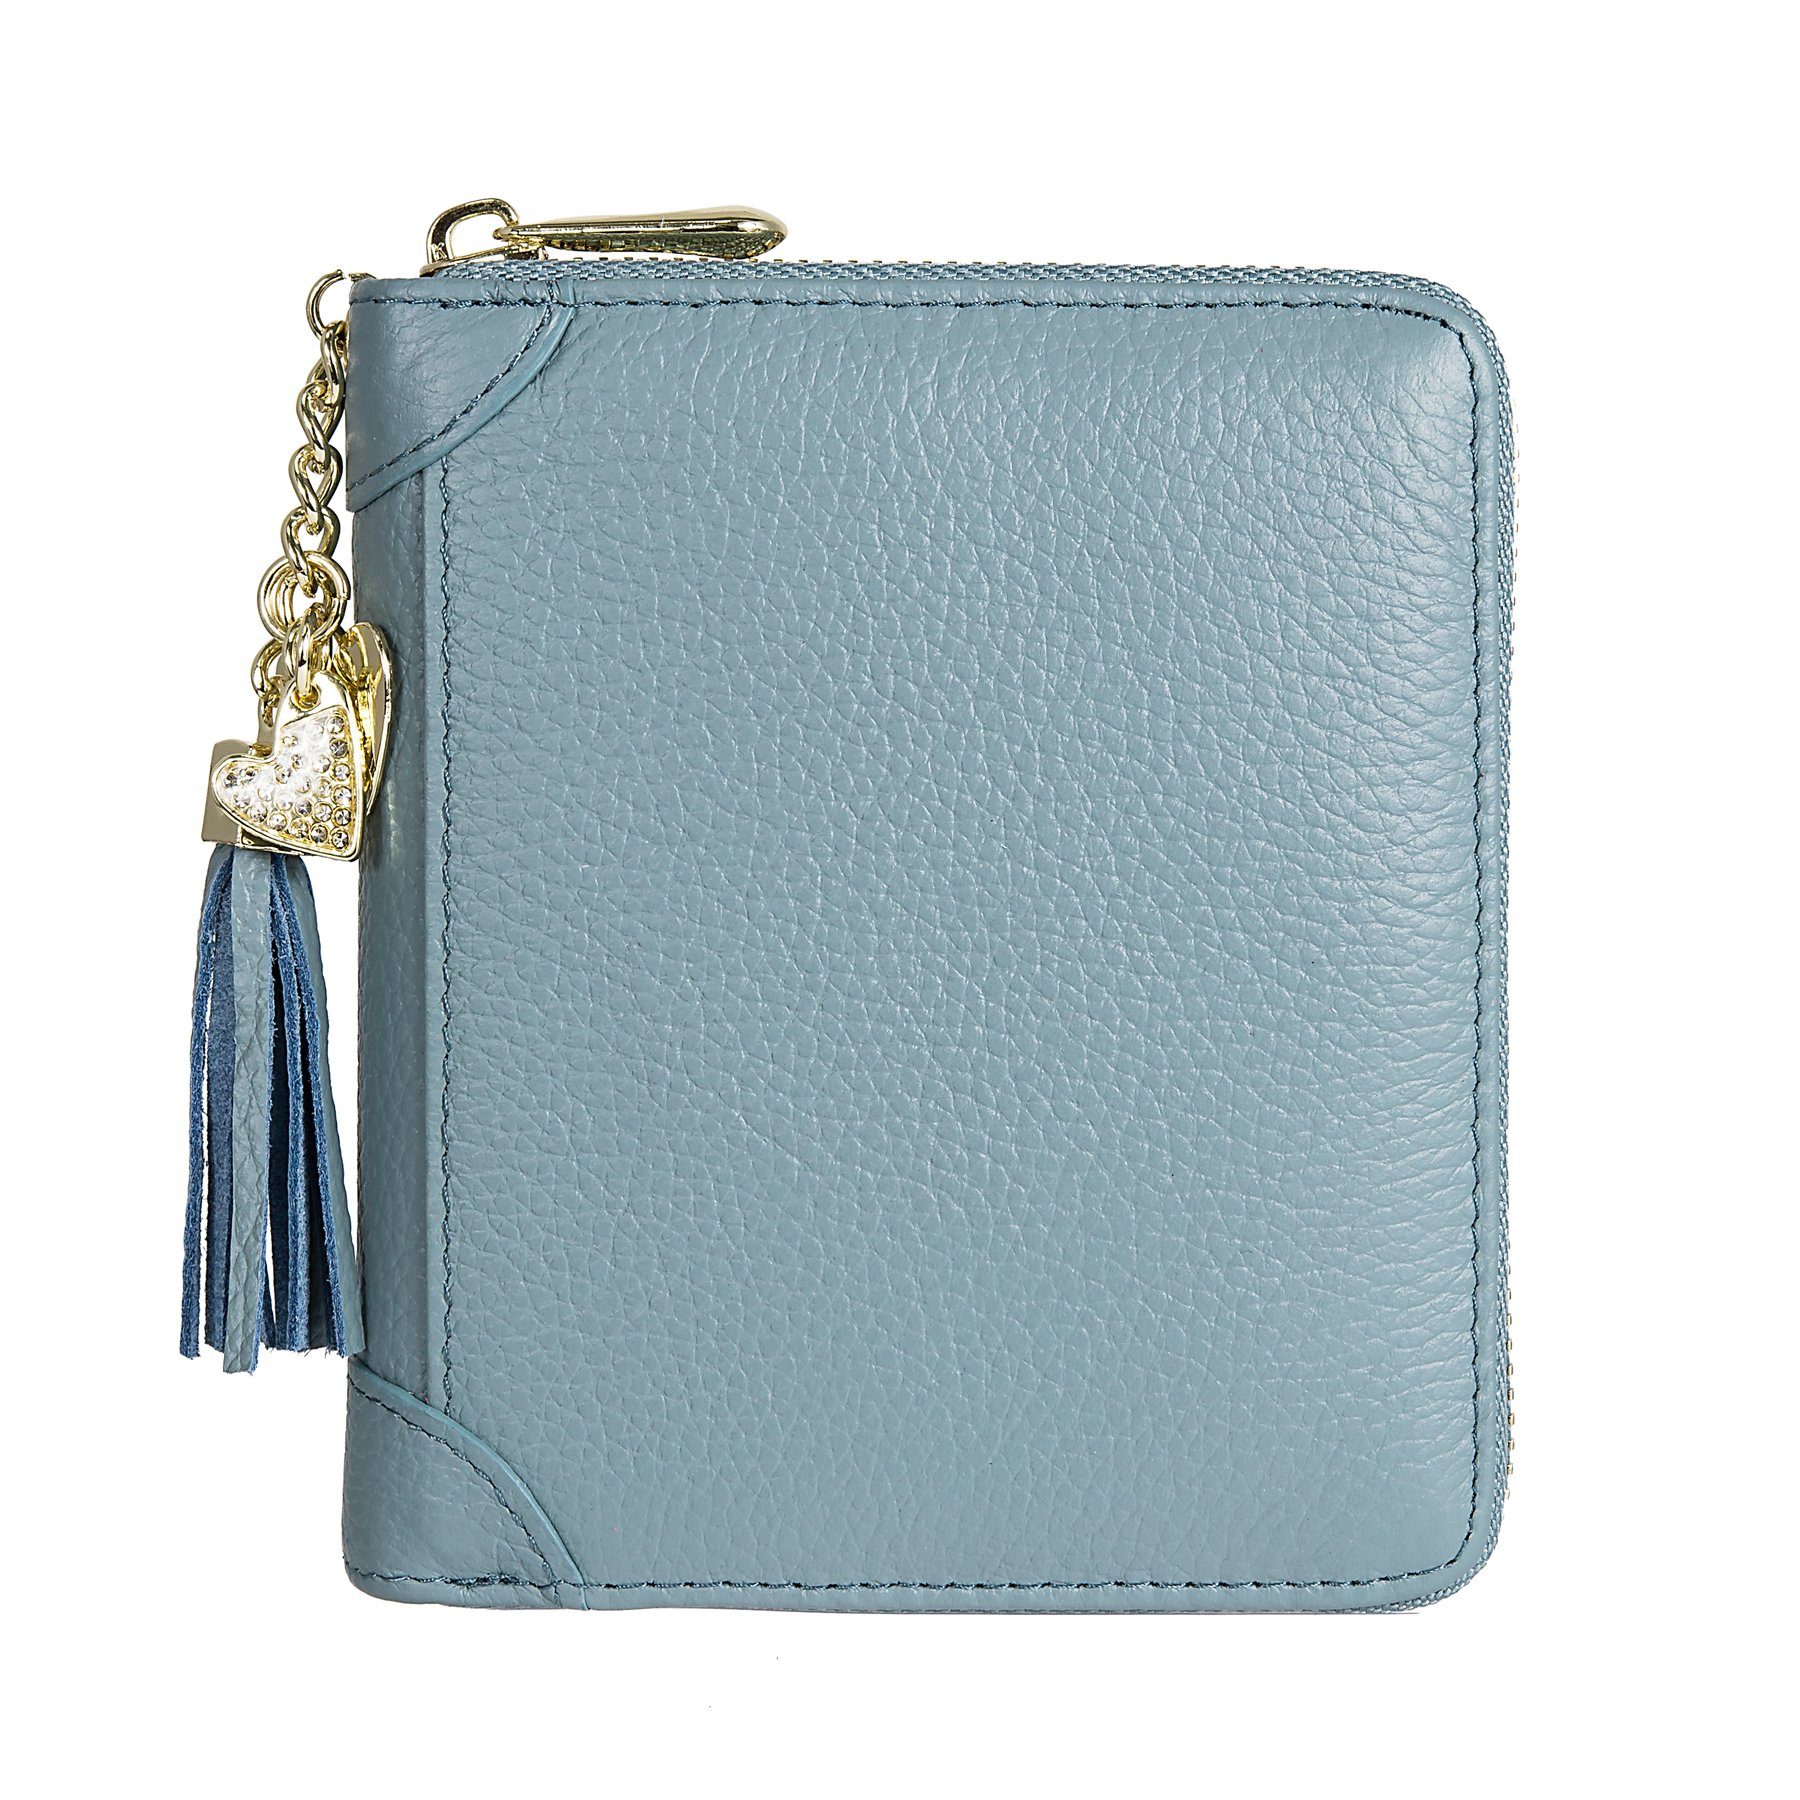 SafeCard 40 Card Solts Women's Credit Card Case Wallet 2 ID Window and Zipper Card Holder (40 Card Blue) by ZORESS (Image #2)